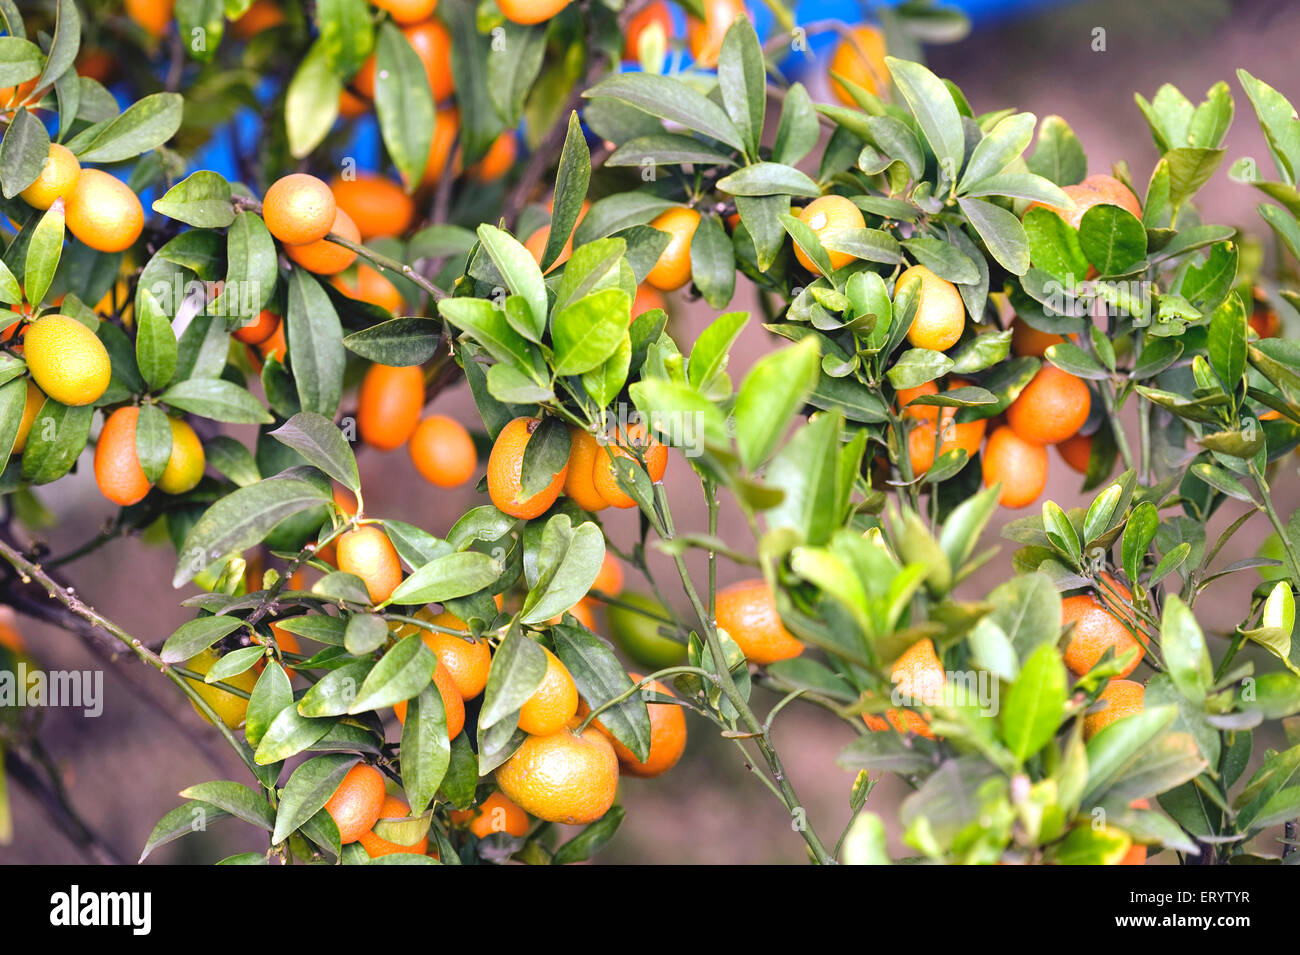 Fruits ; limes and oranges hanging on branch ; West Bengal ; India - Stock Image